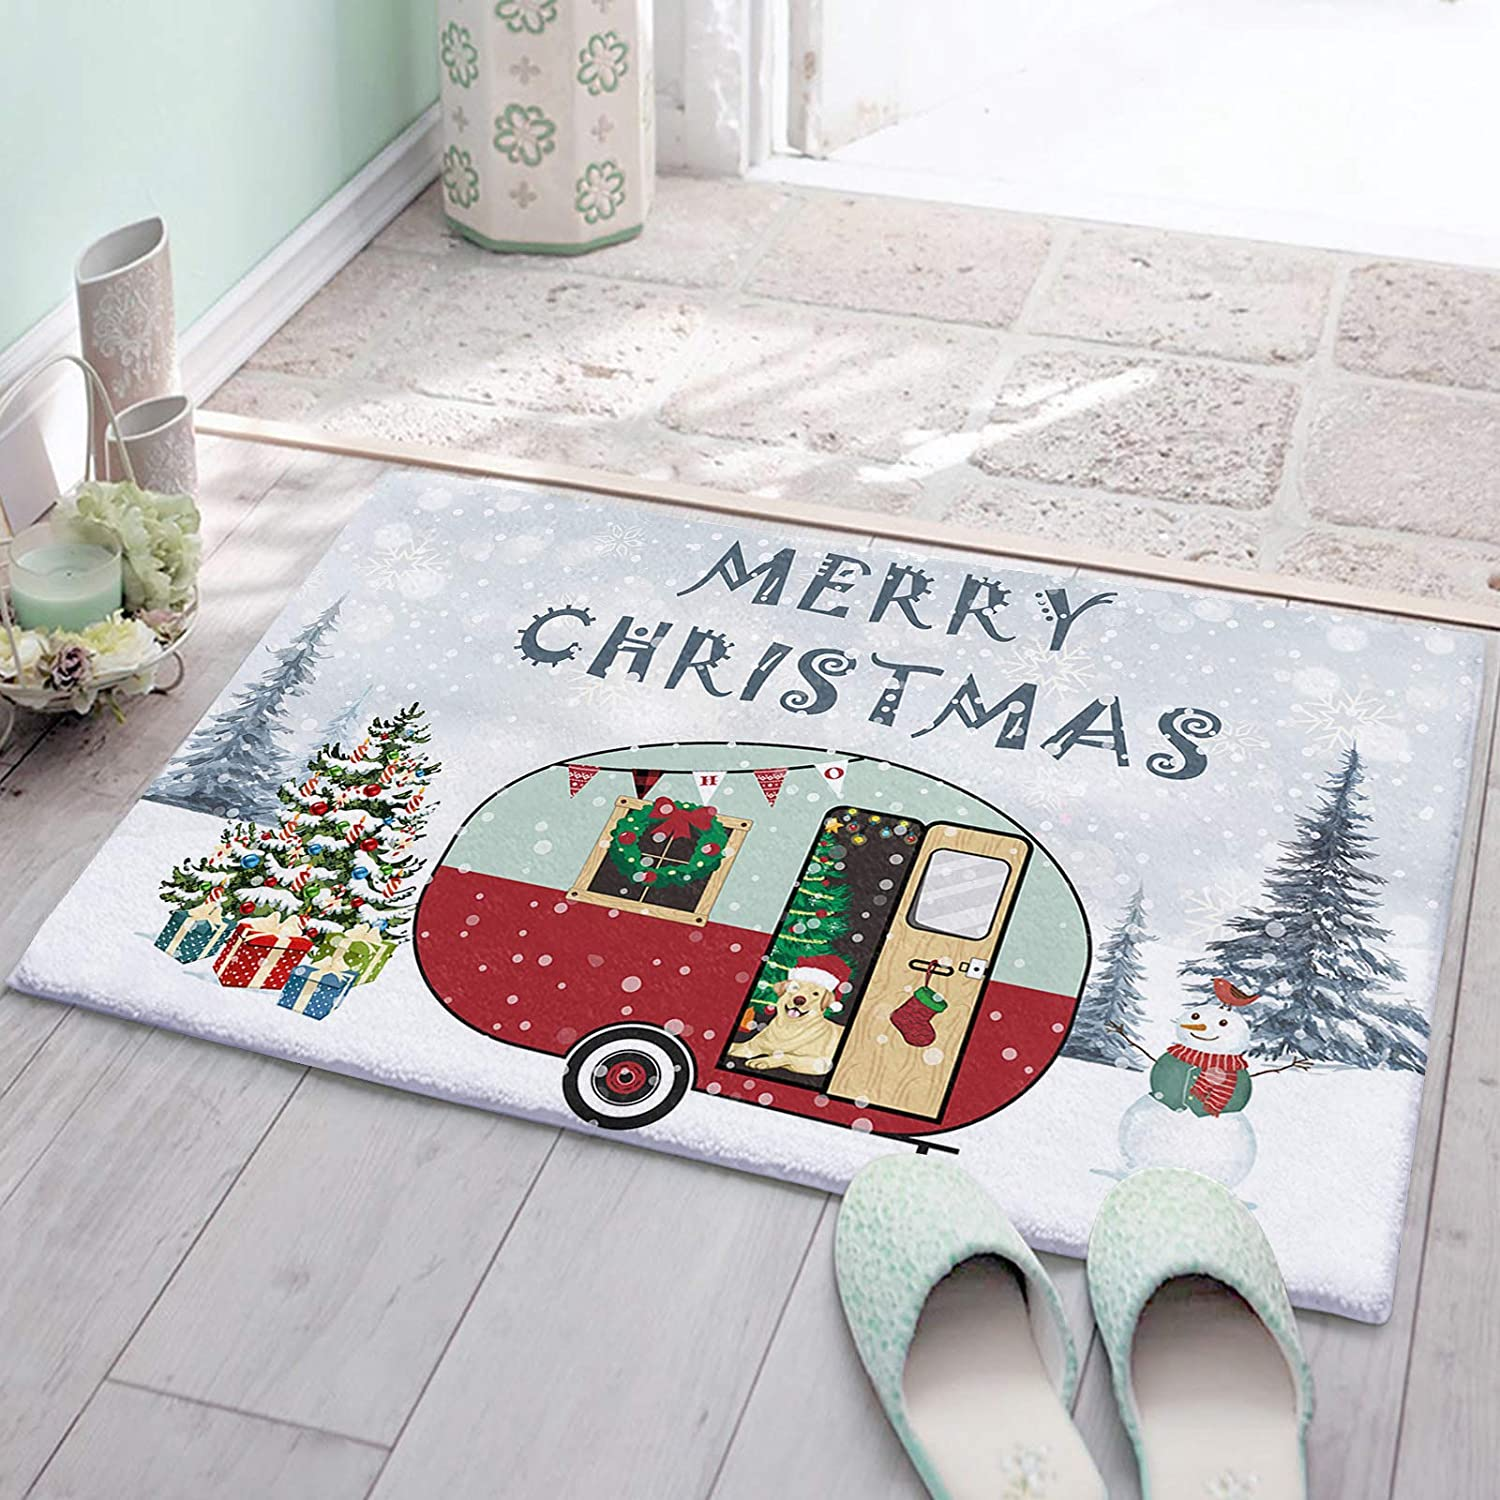 CozyPlushDoormats 2021 autumn and winter new Today's only 20x32in AbsorbentCushionedKitchenMatAre